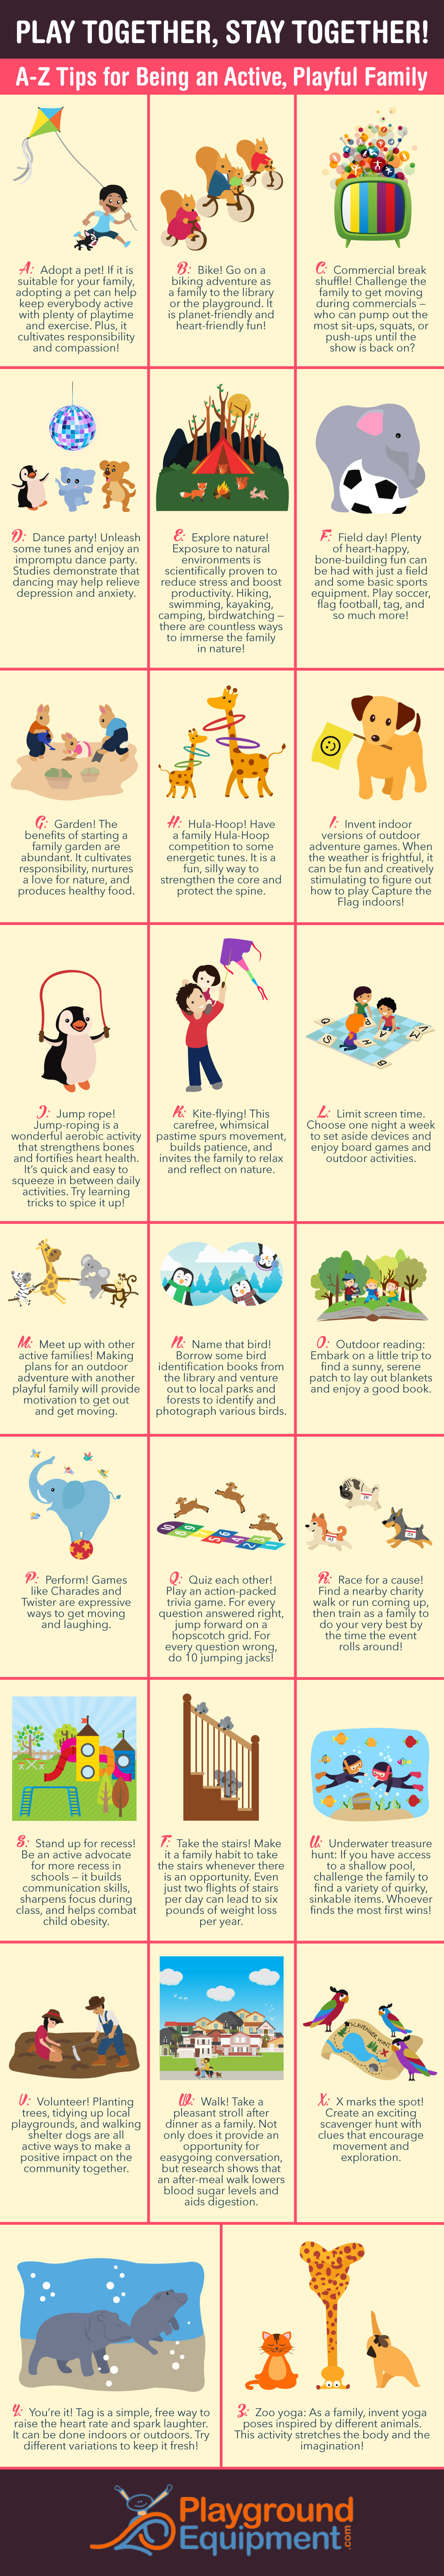 Play Together, Stay Together: an A to Z list of ideas for staying active and healthy as a family